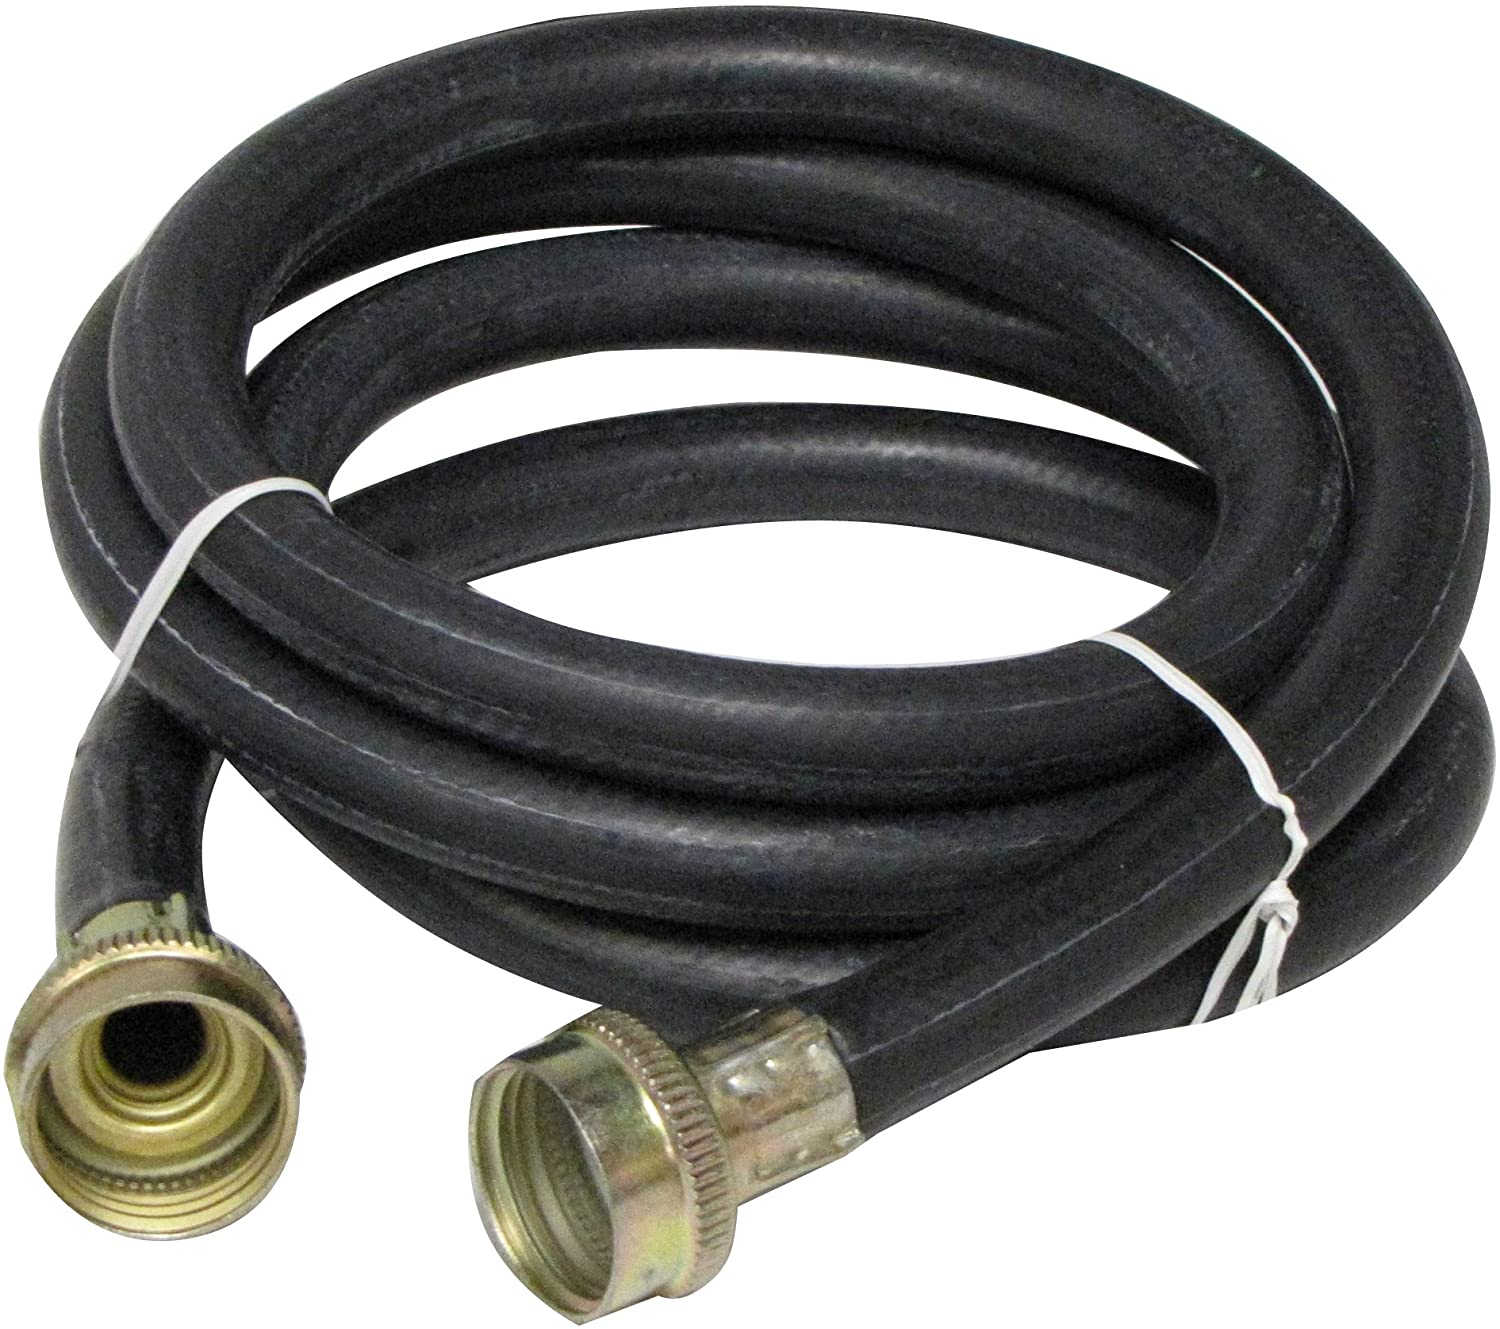 Plumb Pak PP850-2 Washing Machine Hose, 6 Ft, Female, Rubber, 6', Black